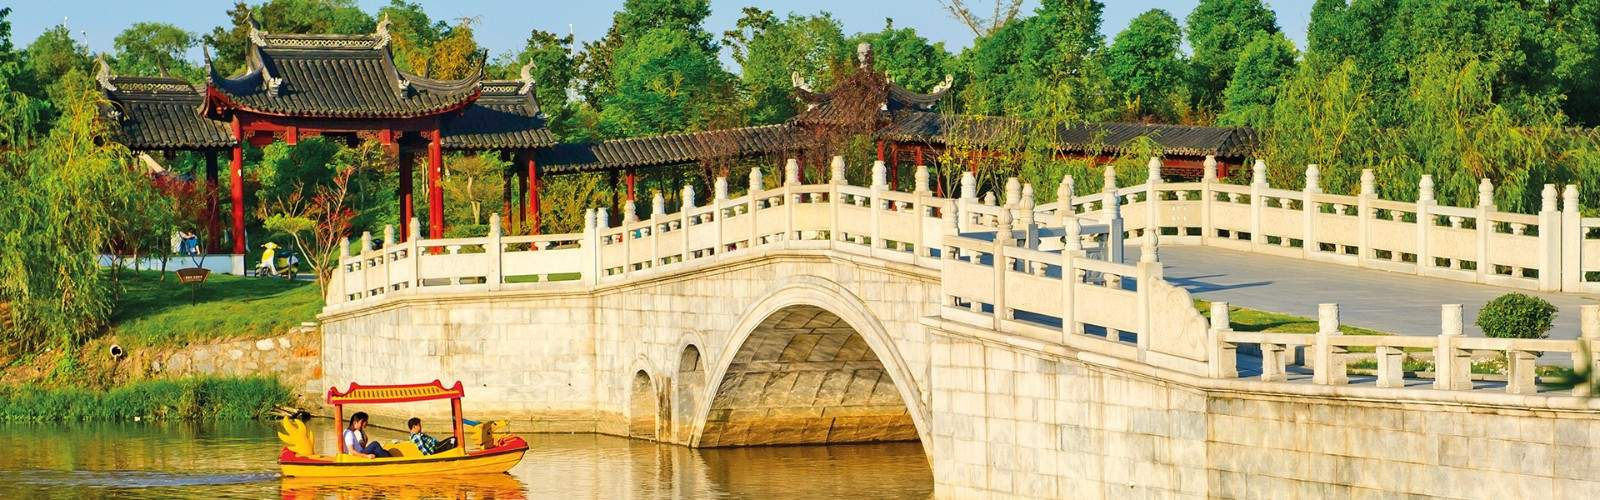 Suzhou & Hangzhou Short Stay Tour | Wendy Wu Tours